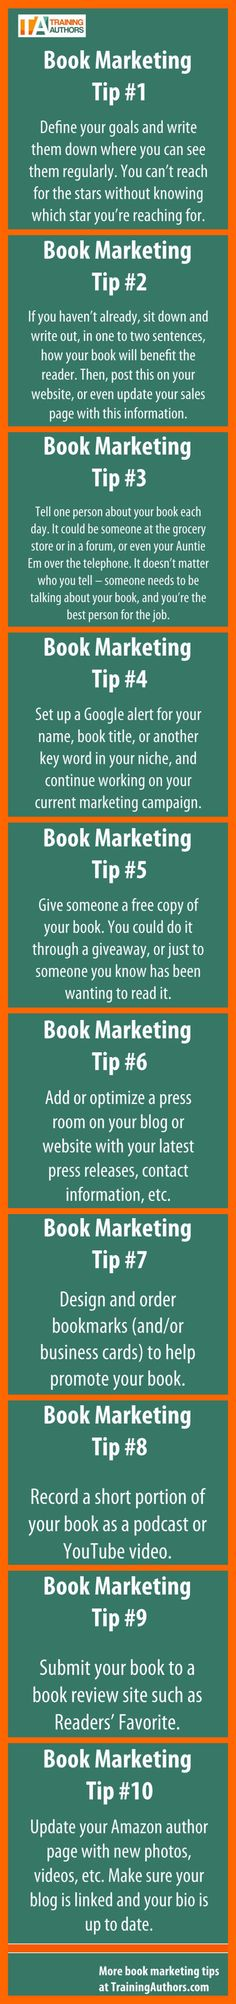 Need to promote a new book, product, website, idea, or service? Here are 10 book marketing tips that will help almost anyone marketing a product, service, or idea. Charity Showcase Memorial Sloan-K…